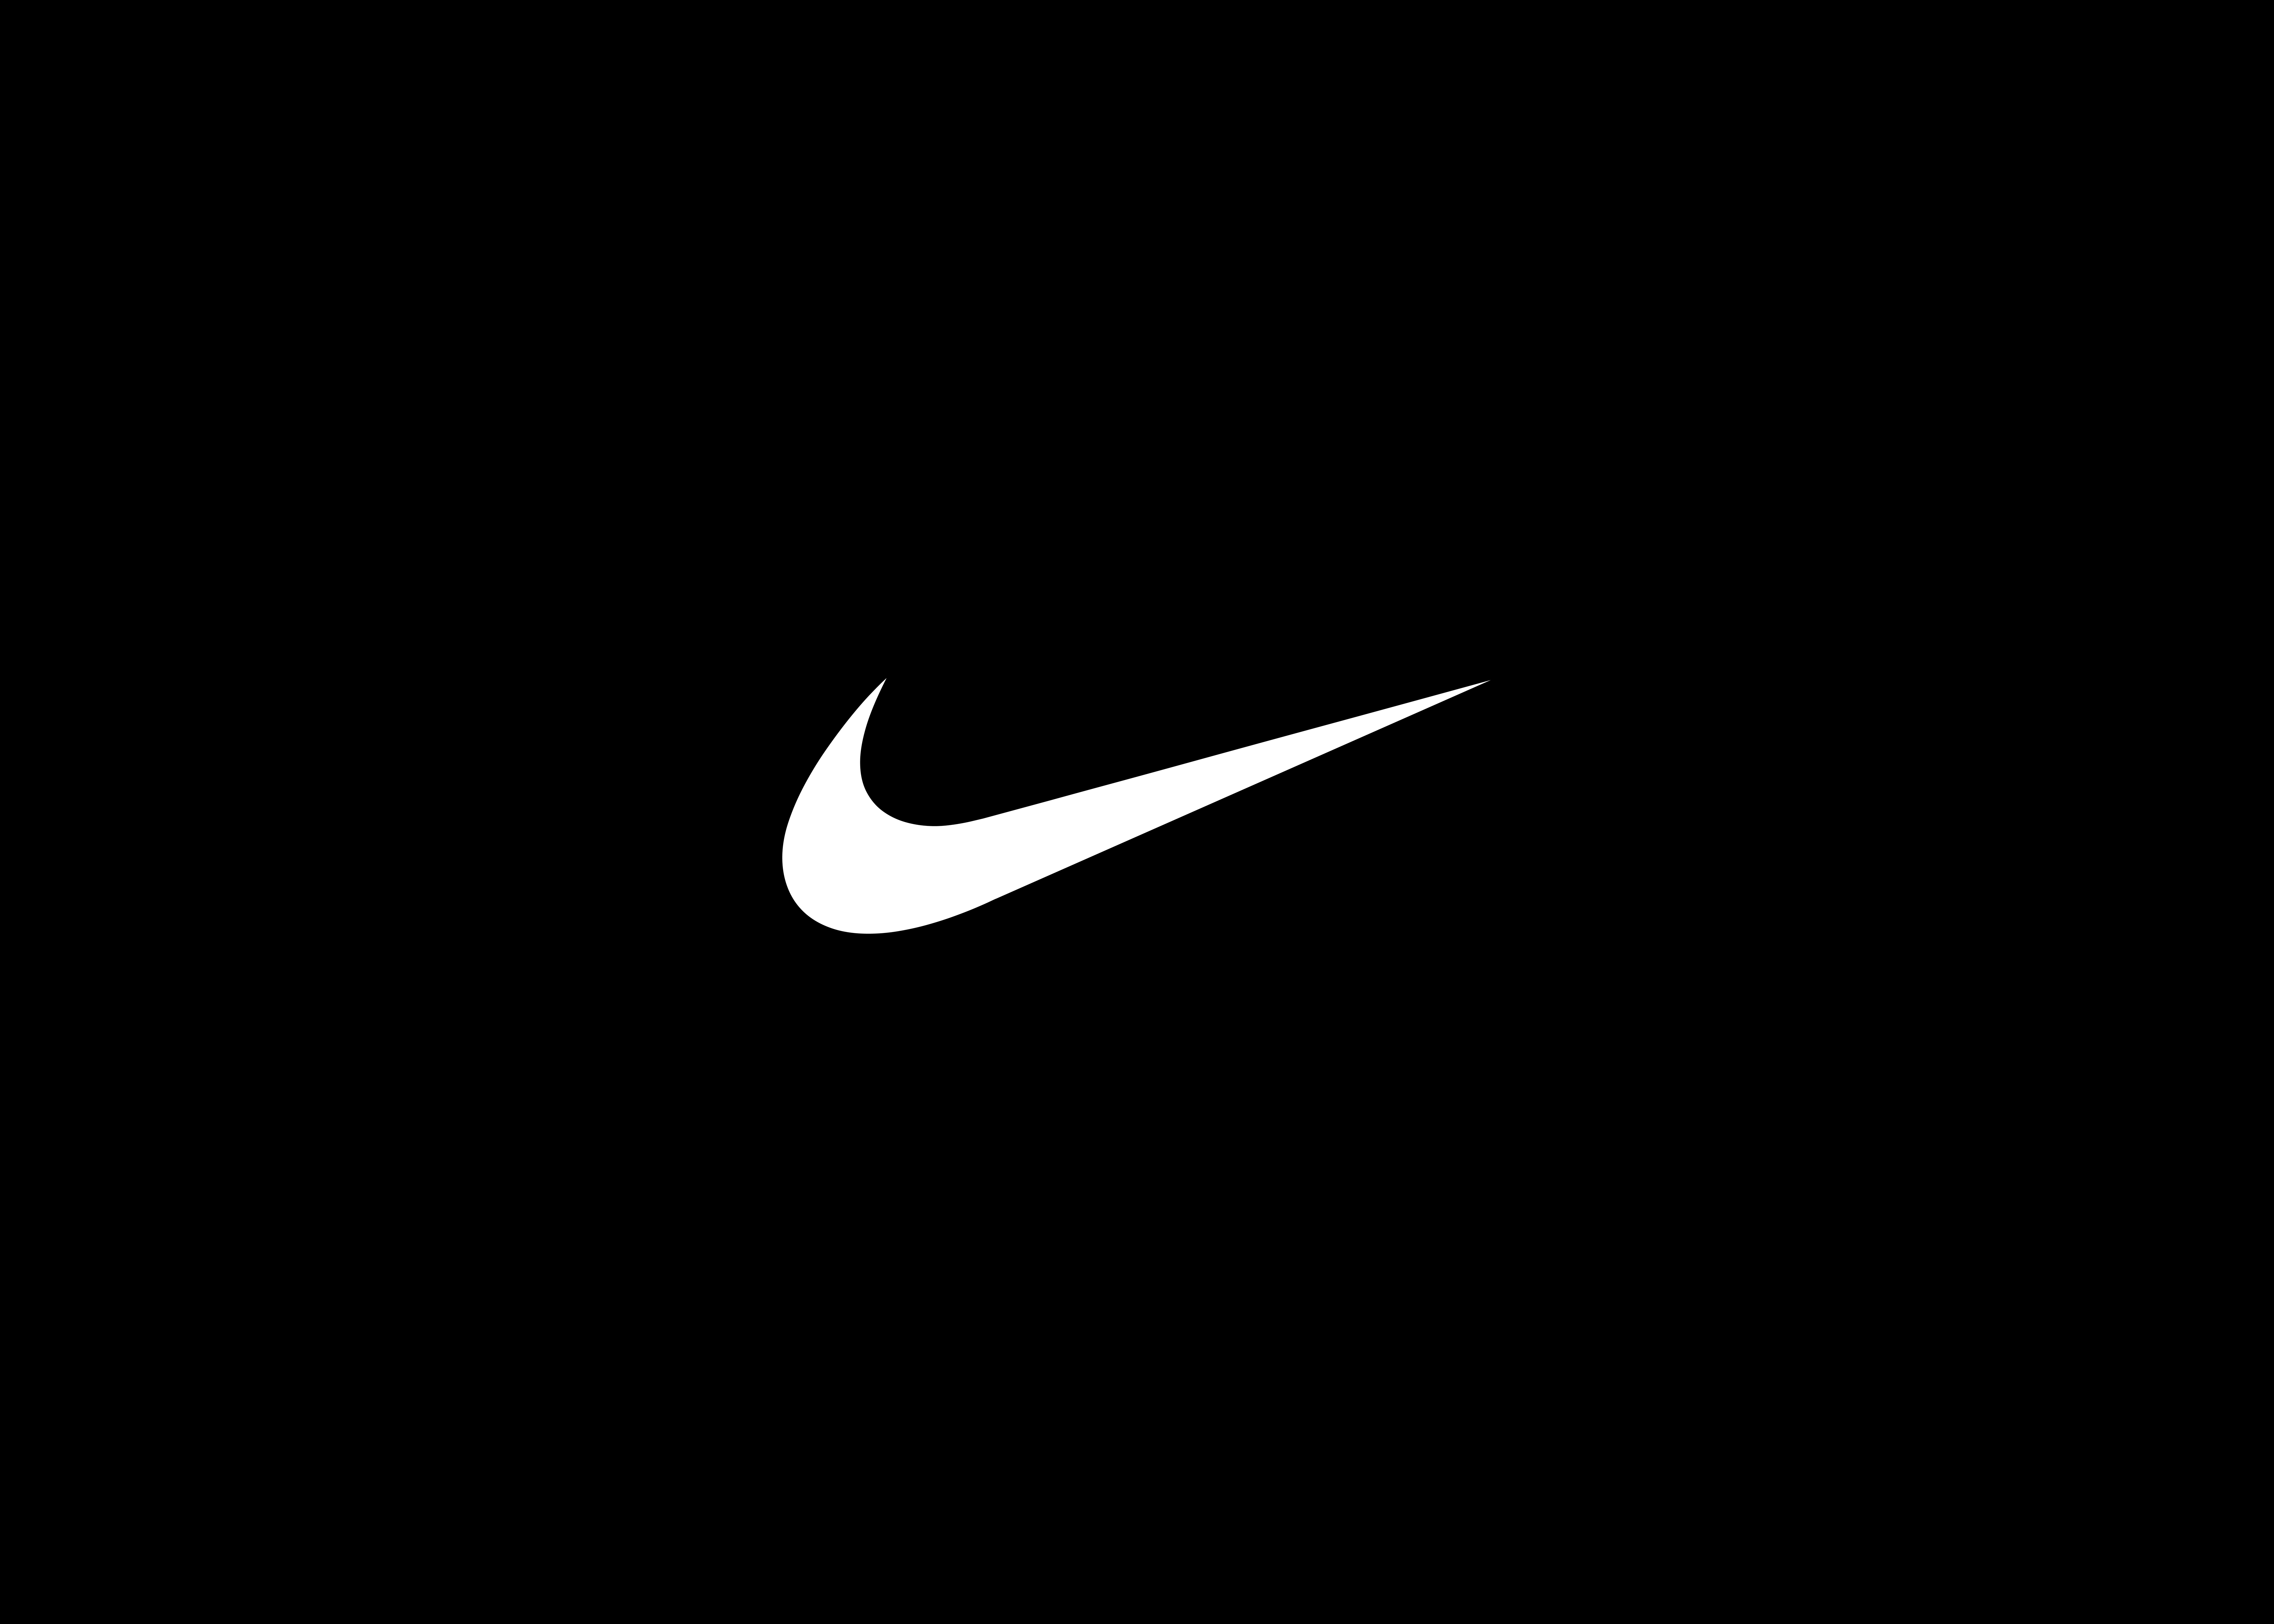 nike shoes logo pictures. lo · hi nike shoes logo pictures